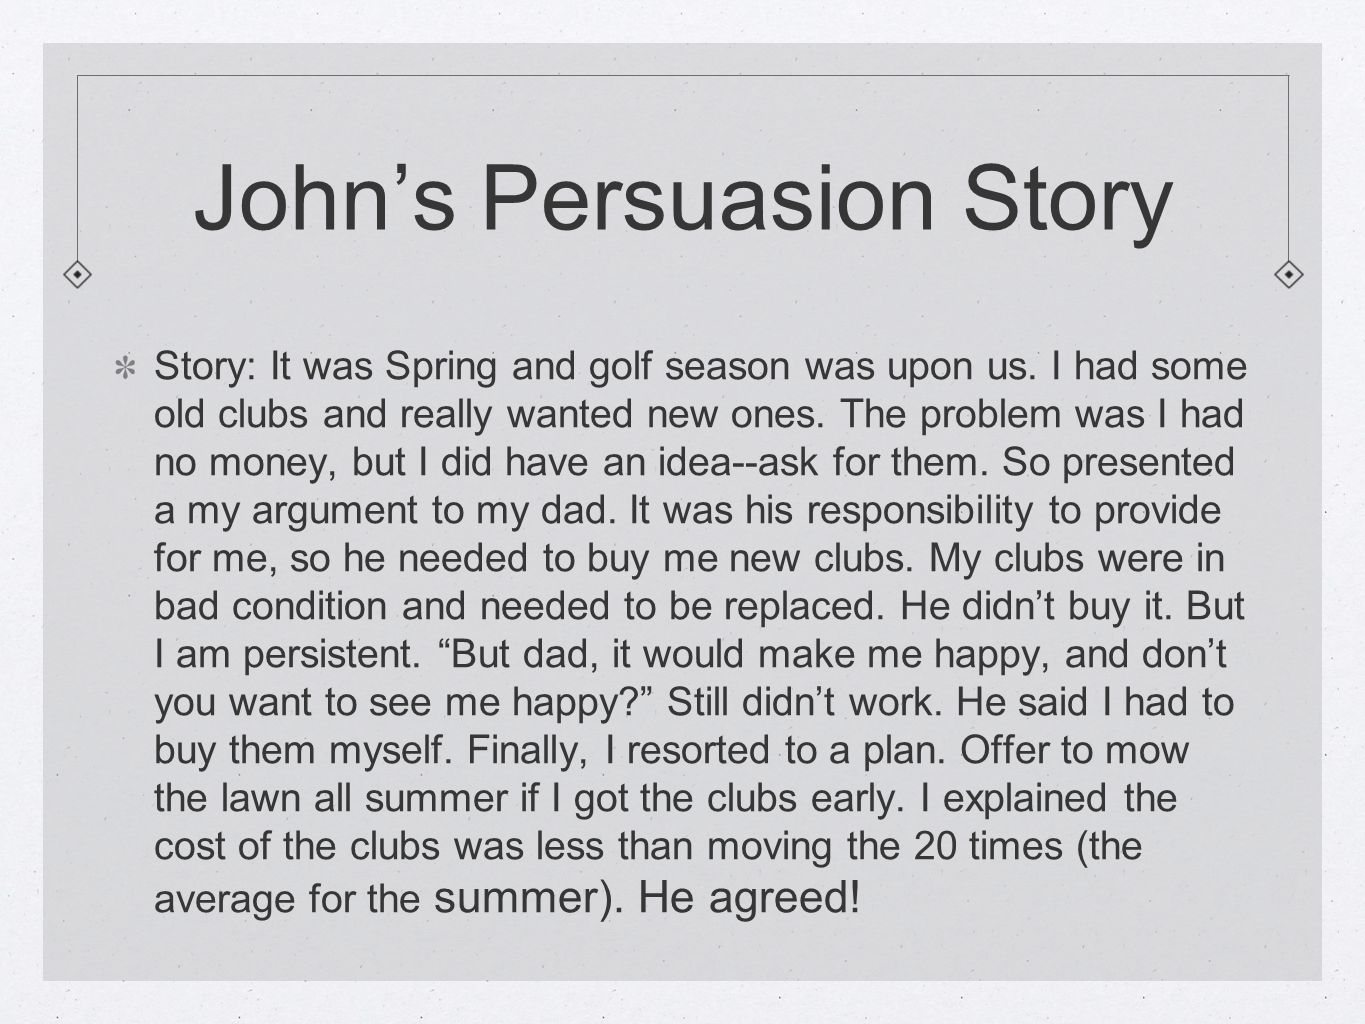 Johns Persuasion Story Story: It was Spring and golf season was upon us.